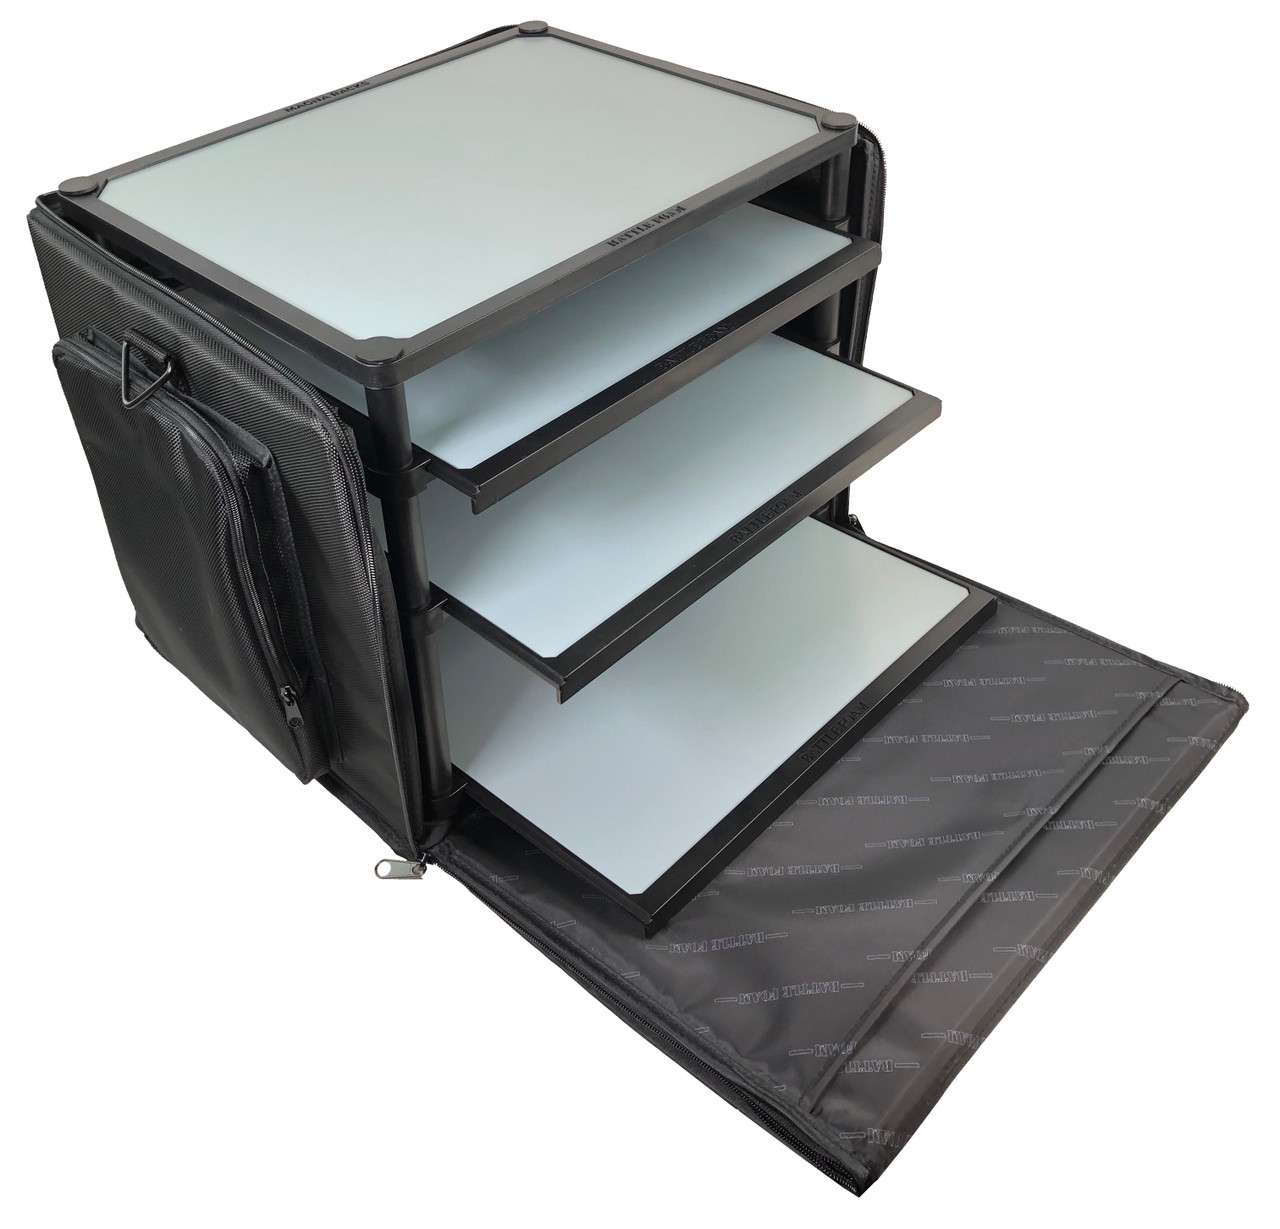 720 P A C K 720 Molle With Magna Rack Sliders Load Out Black Battle Foam For those who have used the magna rack system (fixed and/or sliding) by. 720 p a c k 720 molle with magna rack sliders load out black